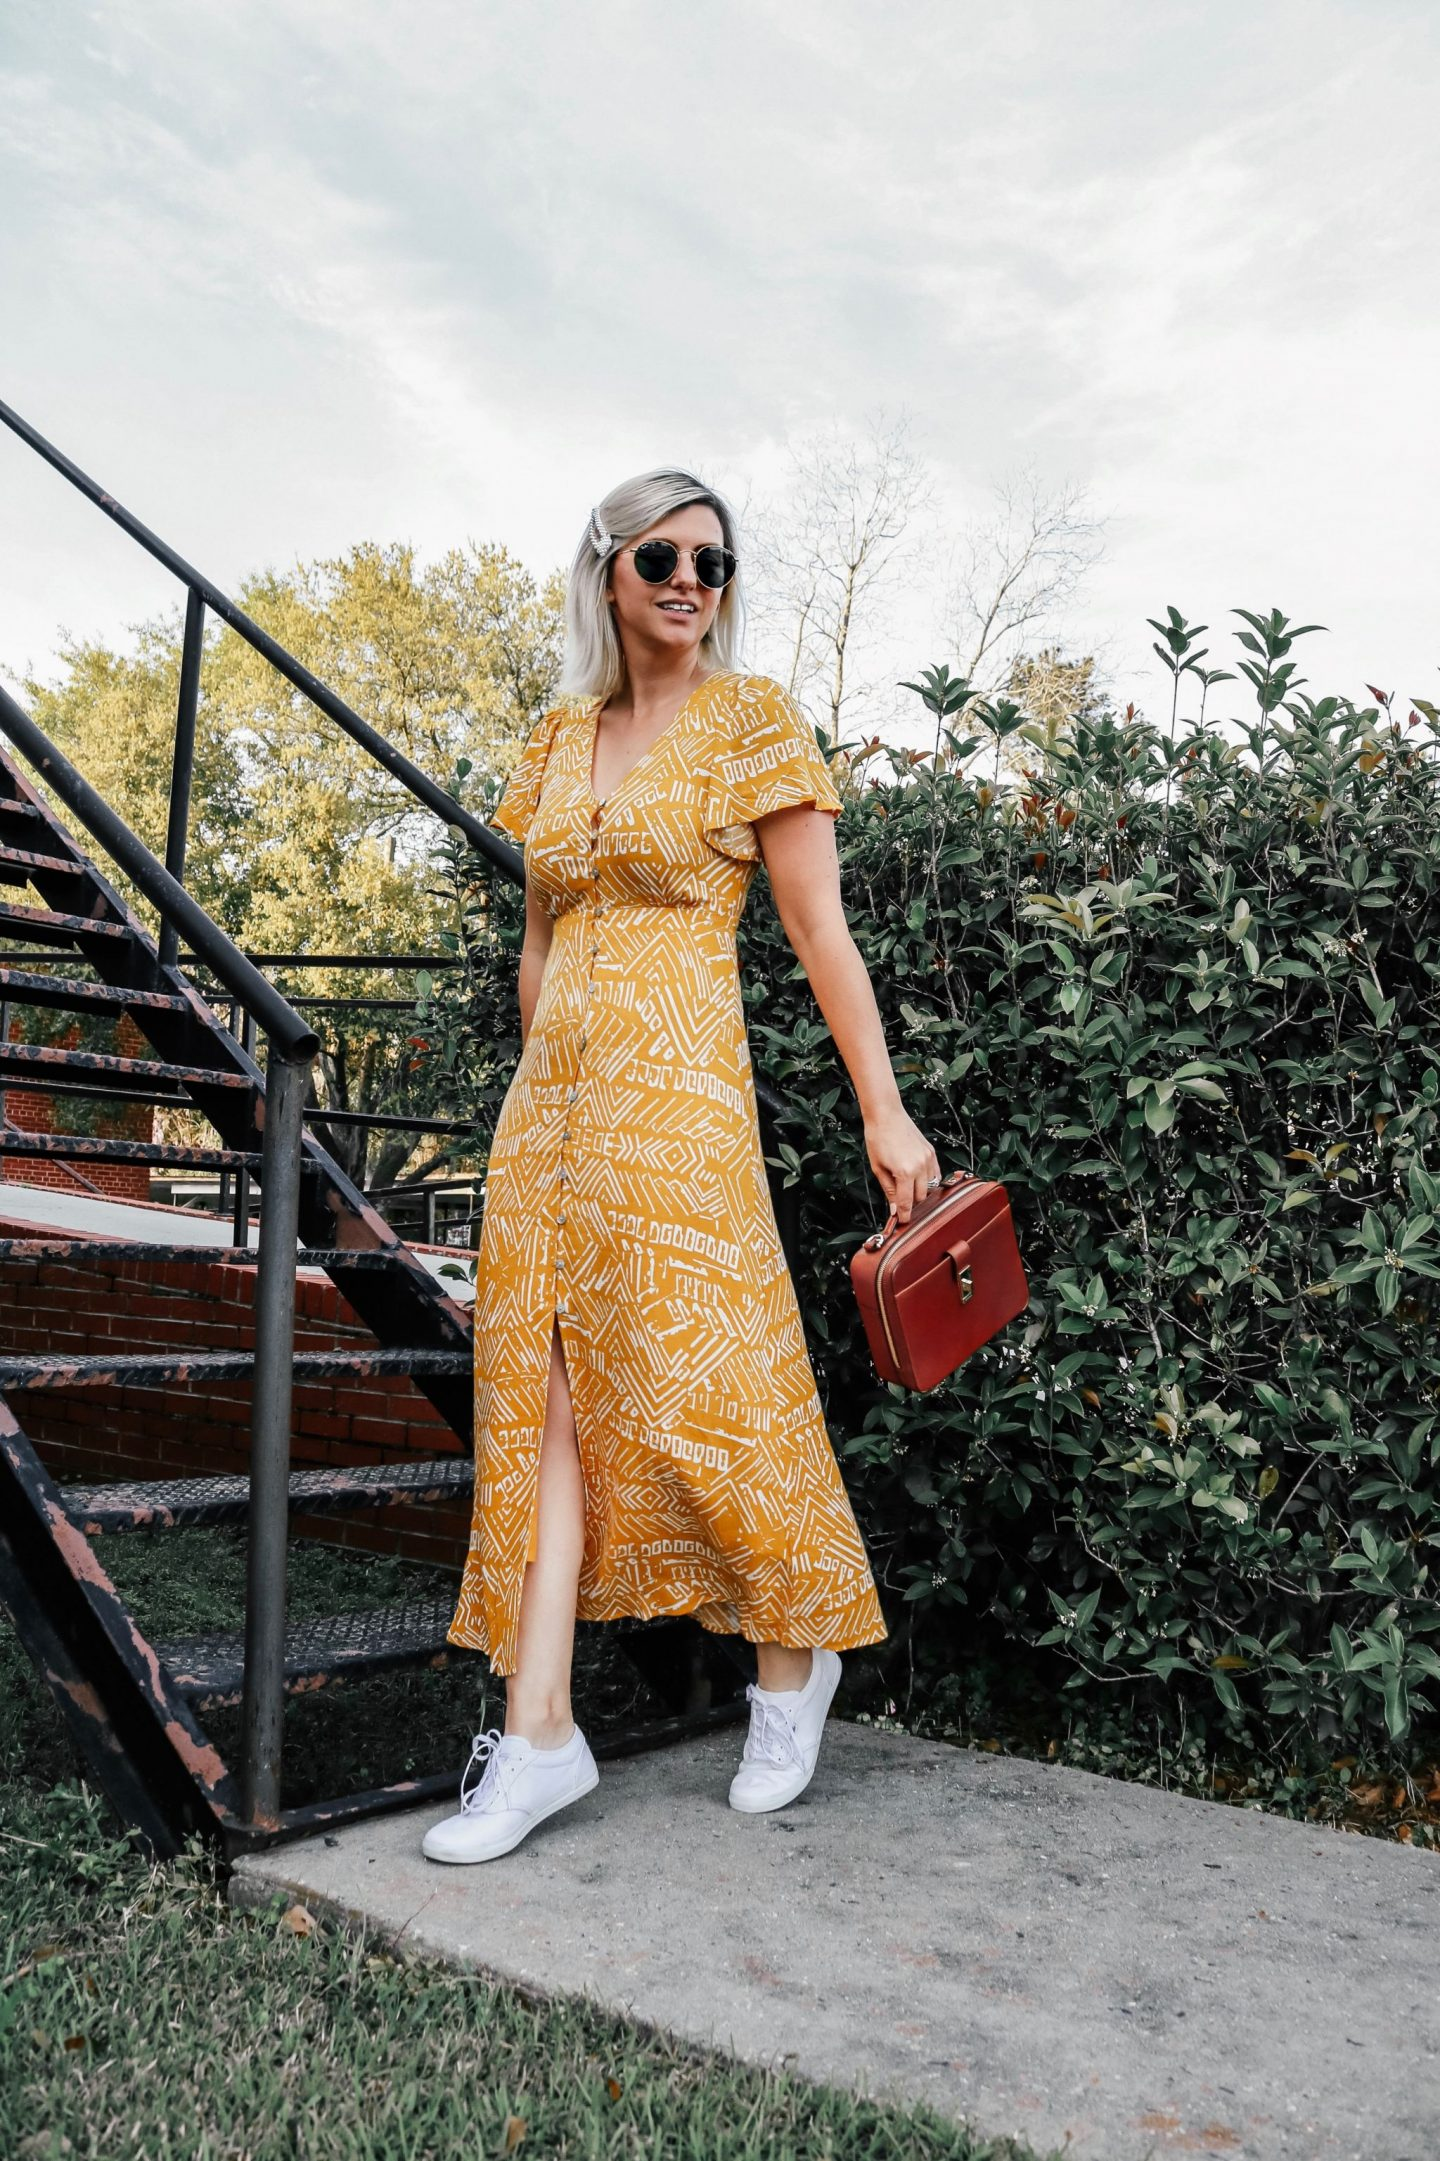 Brahmin Evie Bag, Brahmin, vans sneakers, wearing a maxi dress, editorial photo shoots